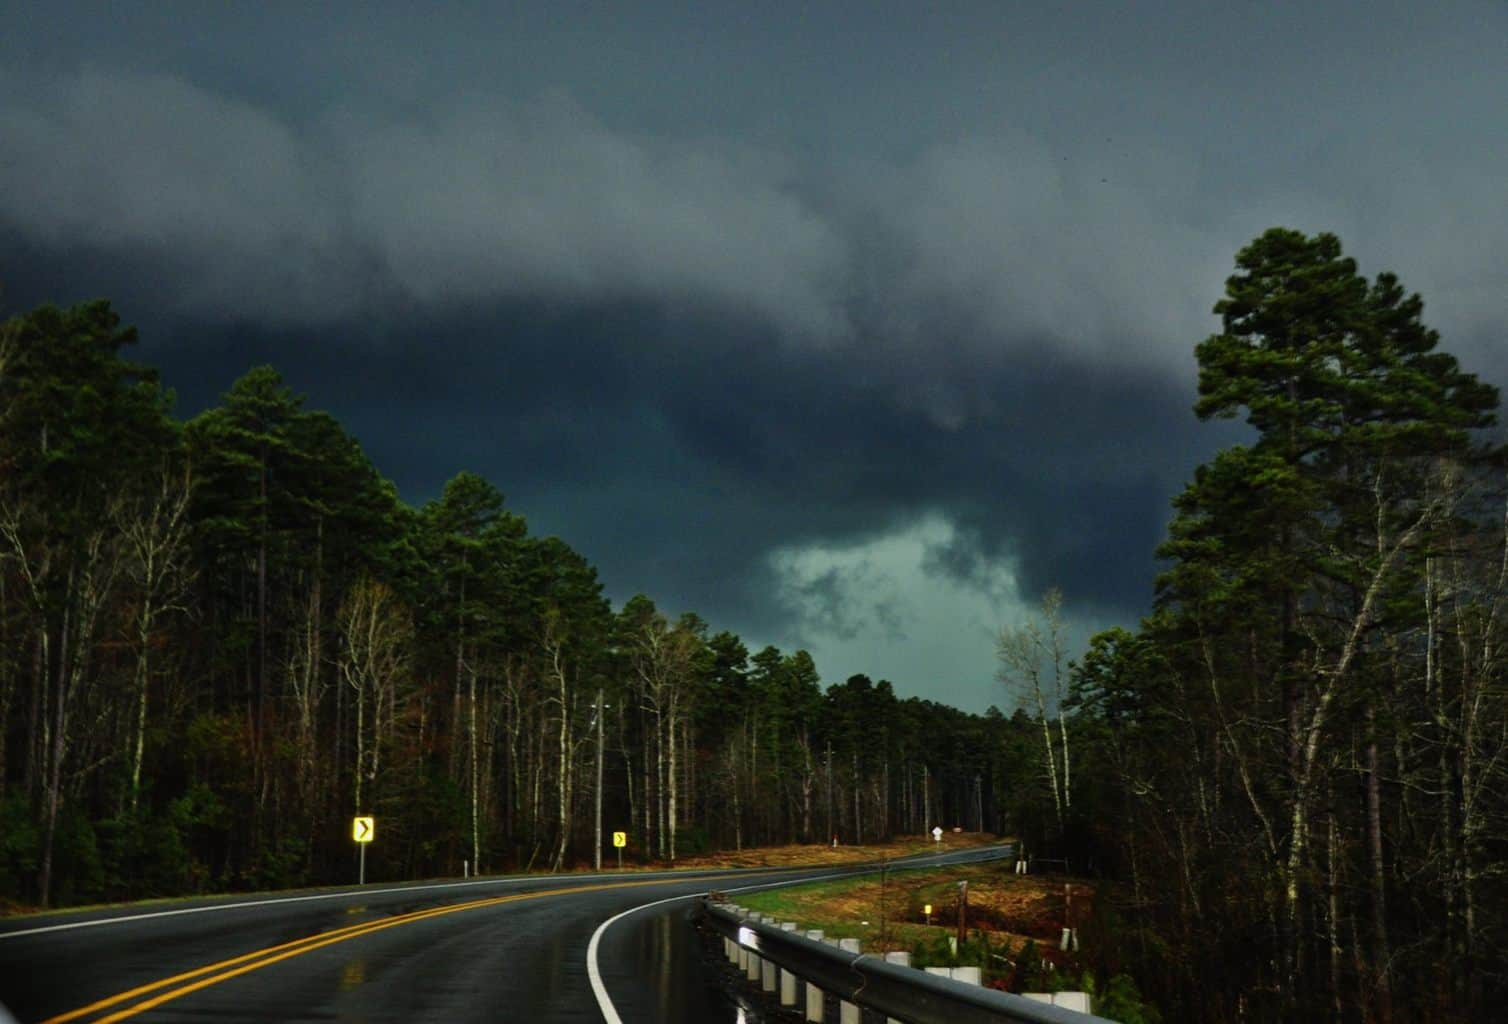 """Chasing a Tornado warned into """"the Jungle"""" around Maumelle, Arkansas. I love the Emerald greens and jade hues to the storms here. Hope you enjoy!! — with Jesse Post."""